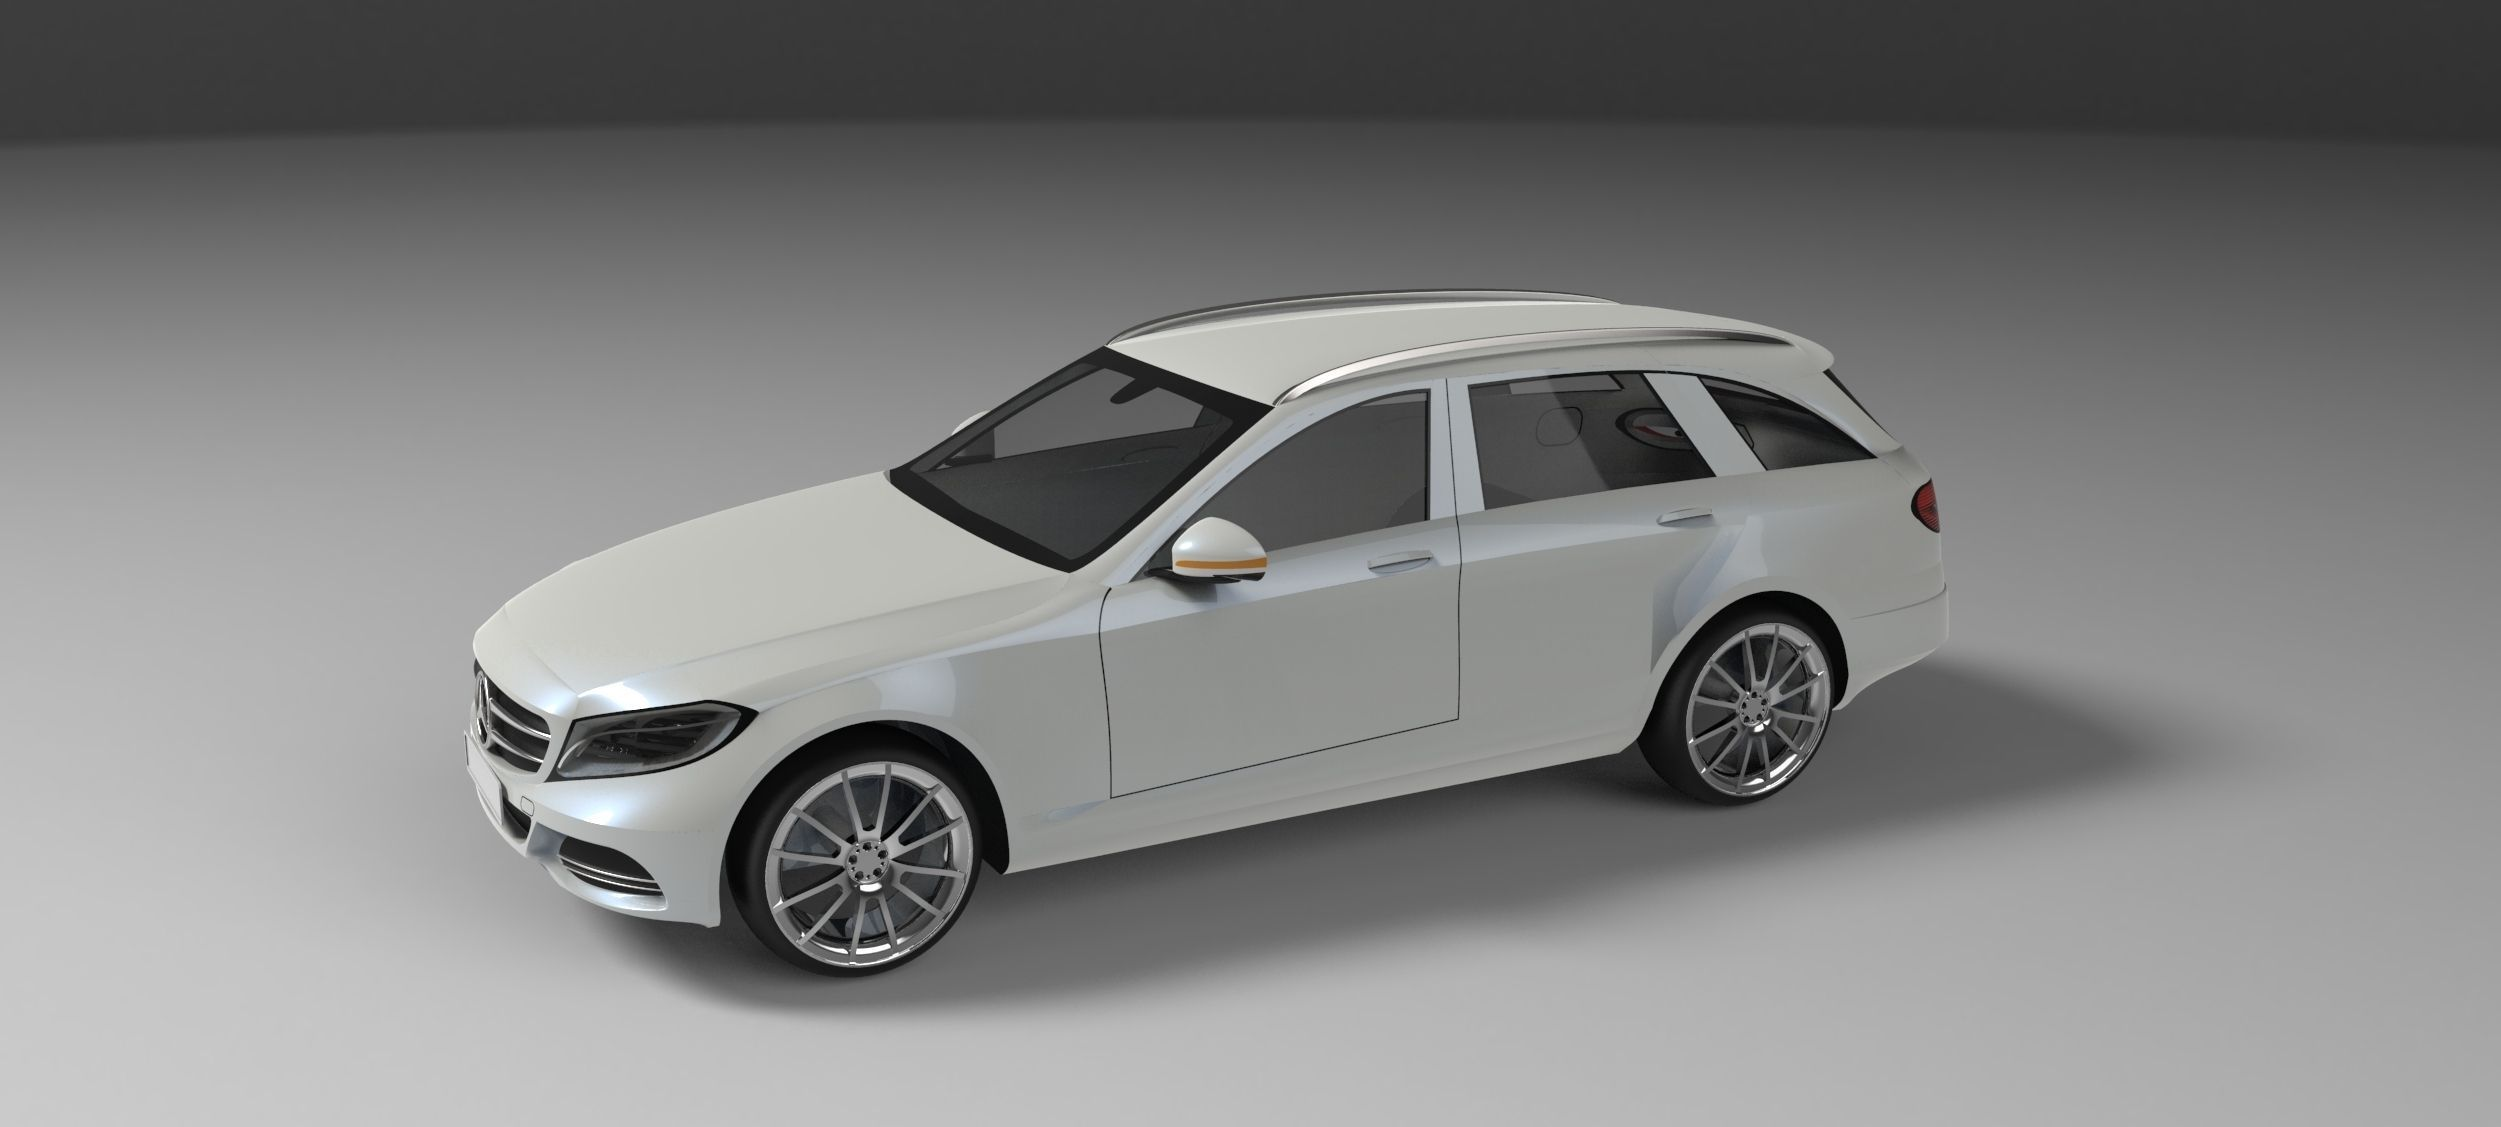 Mercedes benz c class estate s205 2014 3d model max obj for Mercedes benz c class models